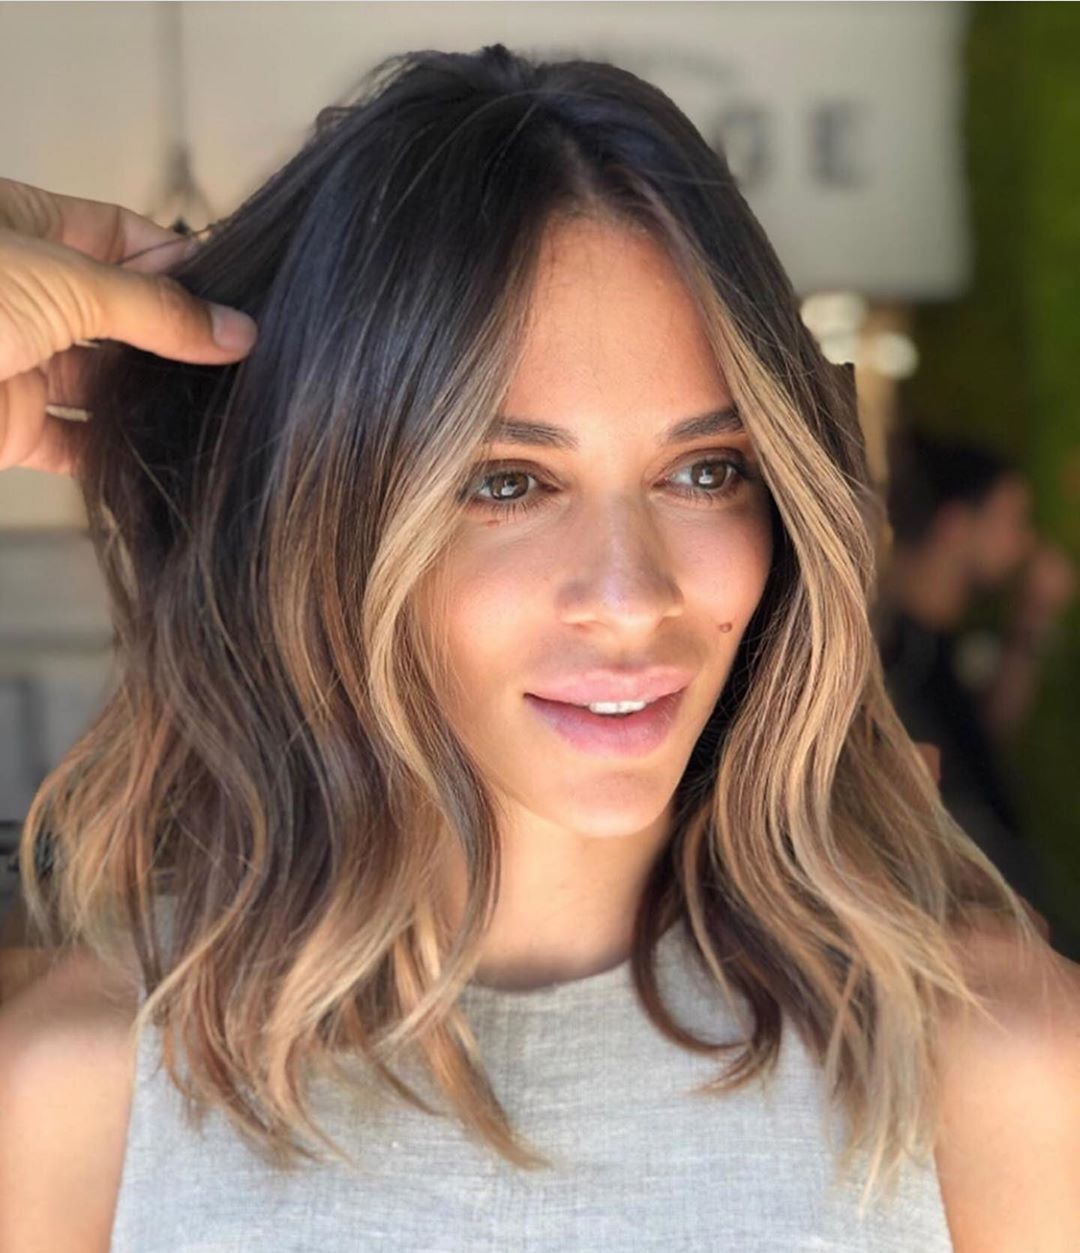 "Enissablog on Instagram: ""What's your favorite🤩#long or short hair#blonde or dark#1️⃣to the🔟#haircolor #hairstyles #haircut #hairart #balayage #ombre#facelight…"" - nina"